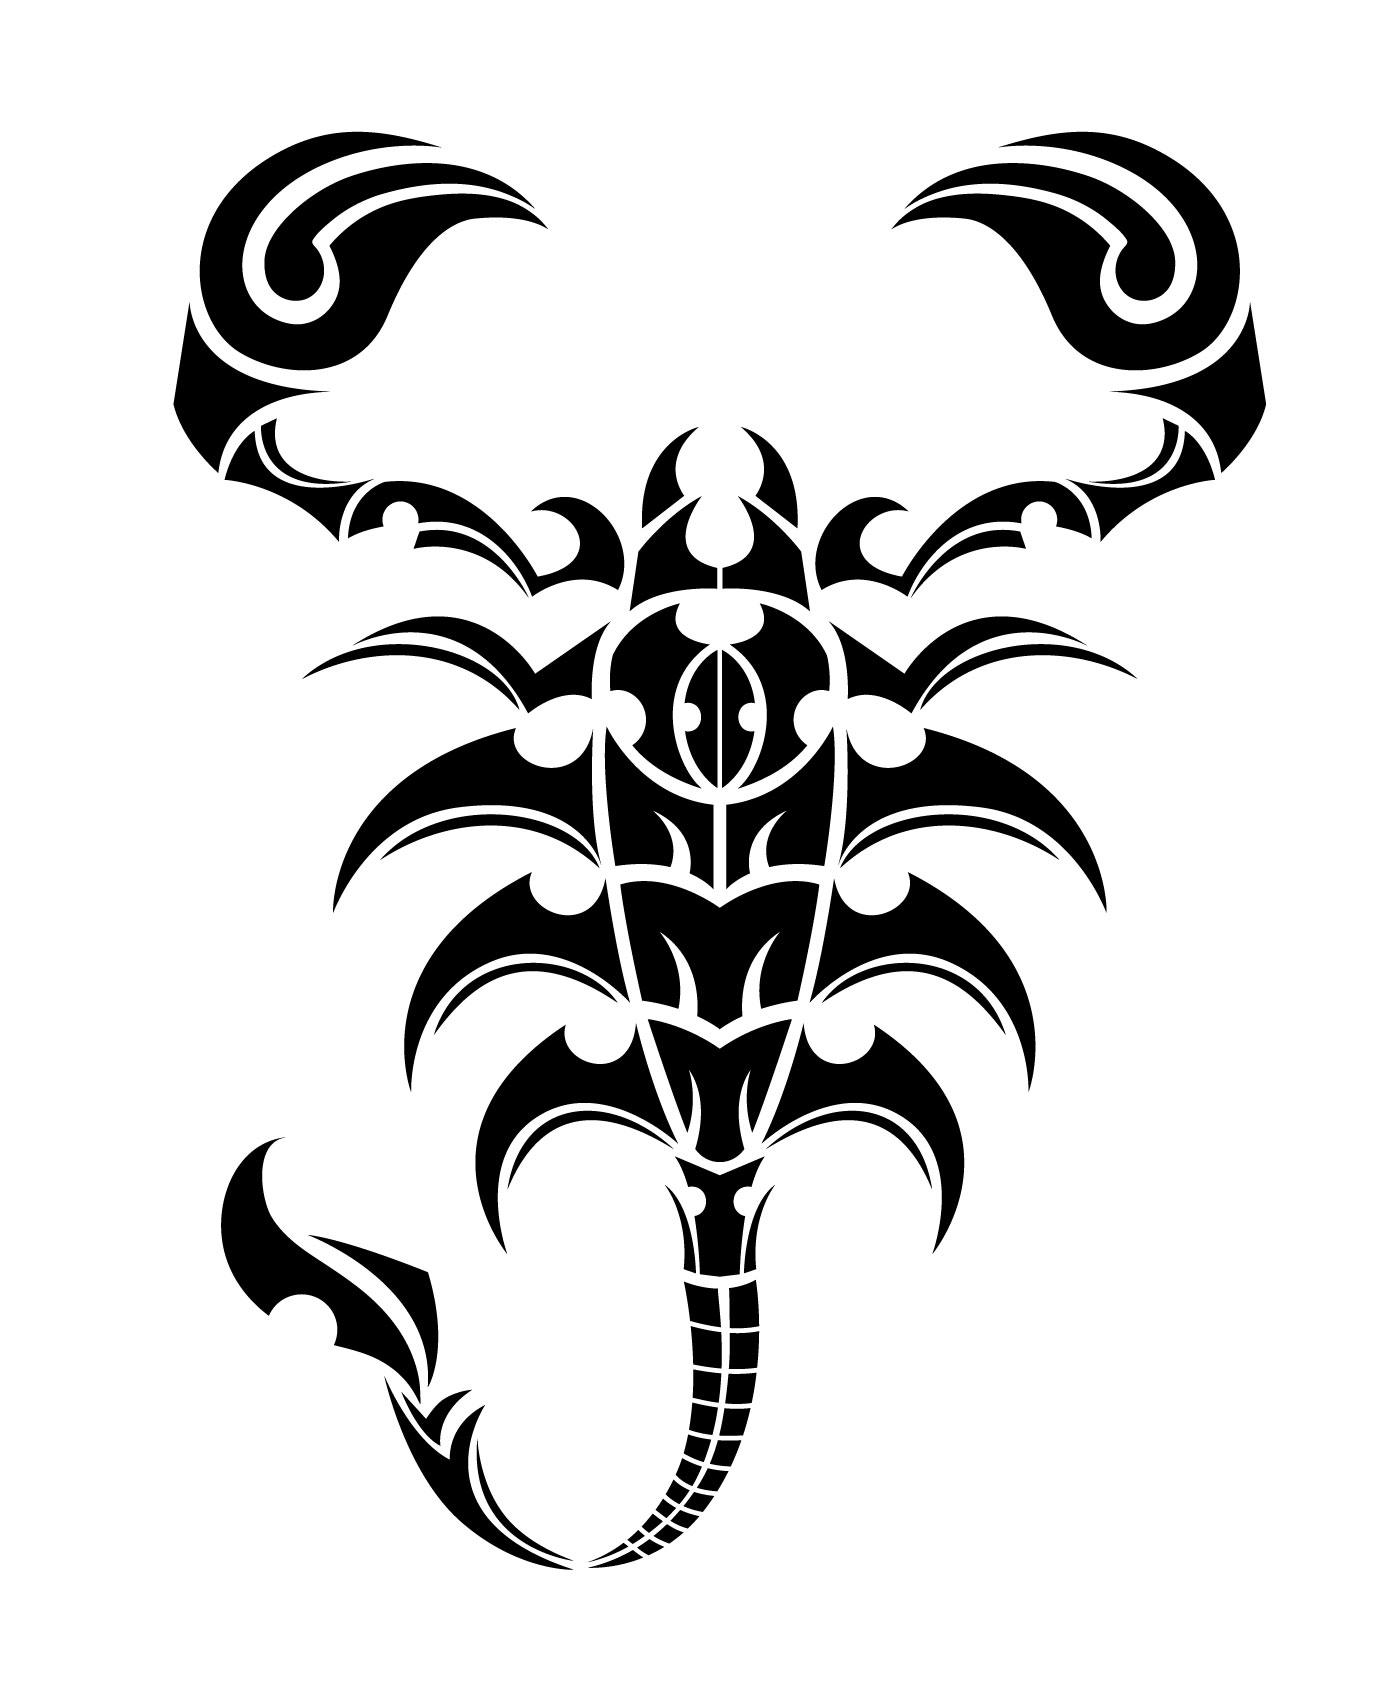 Tattoo Images Tribal: Tribal Free Vector Art